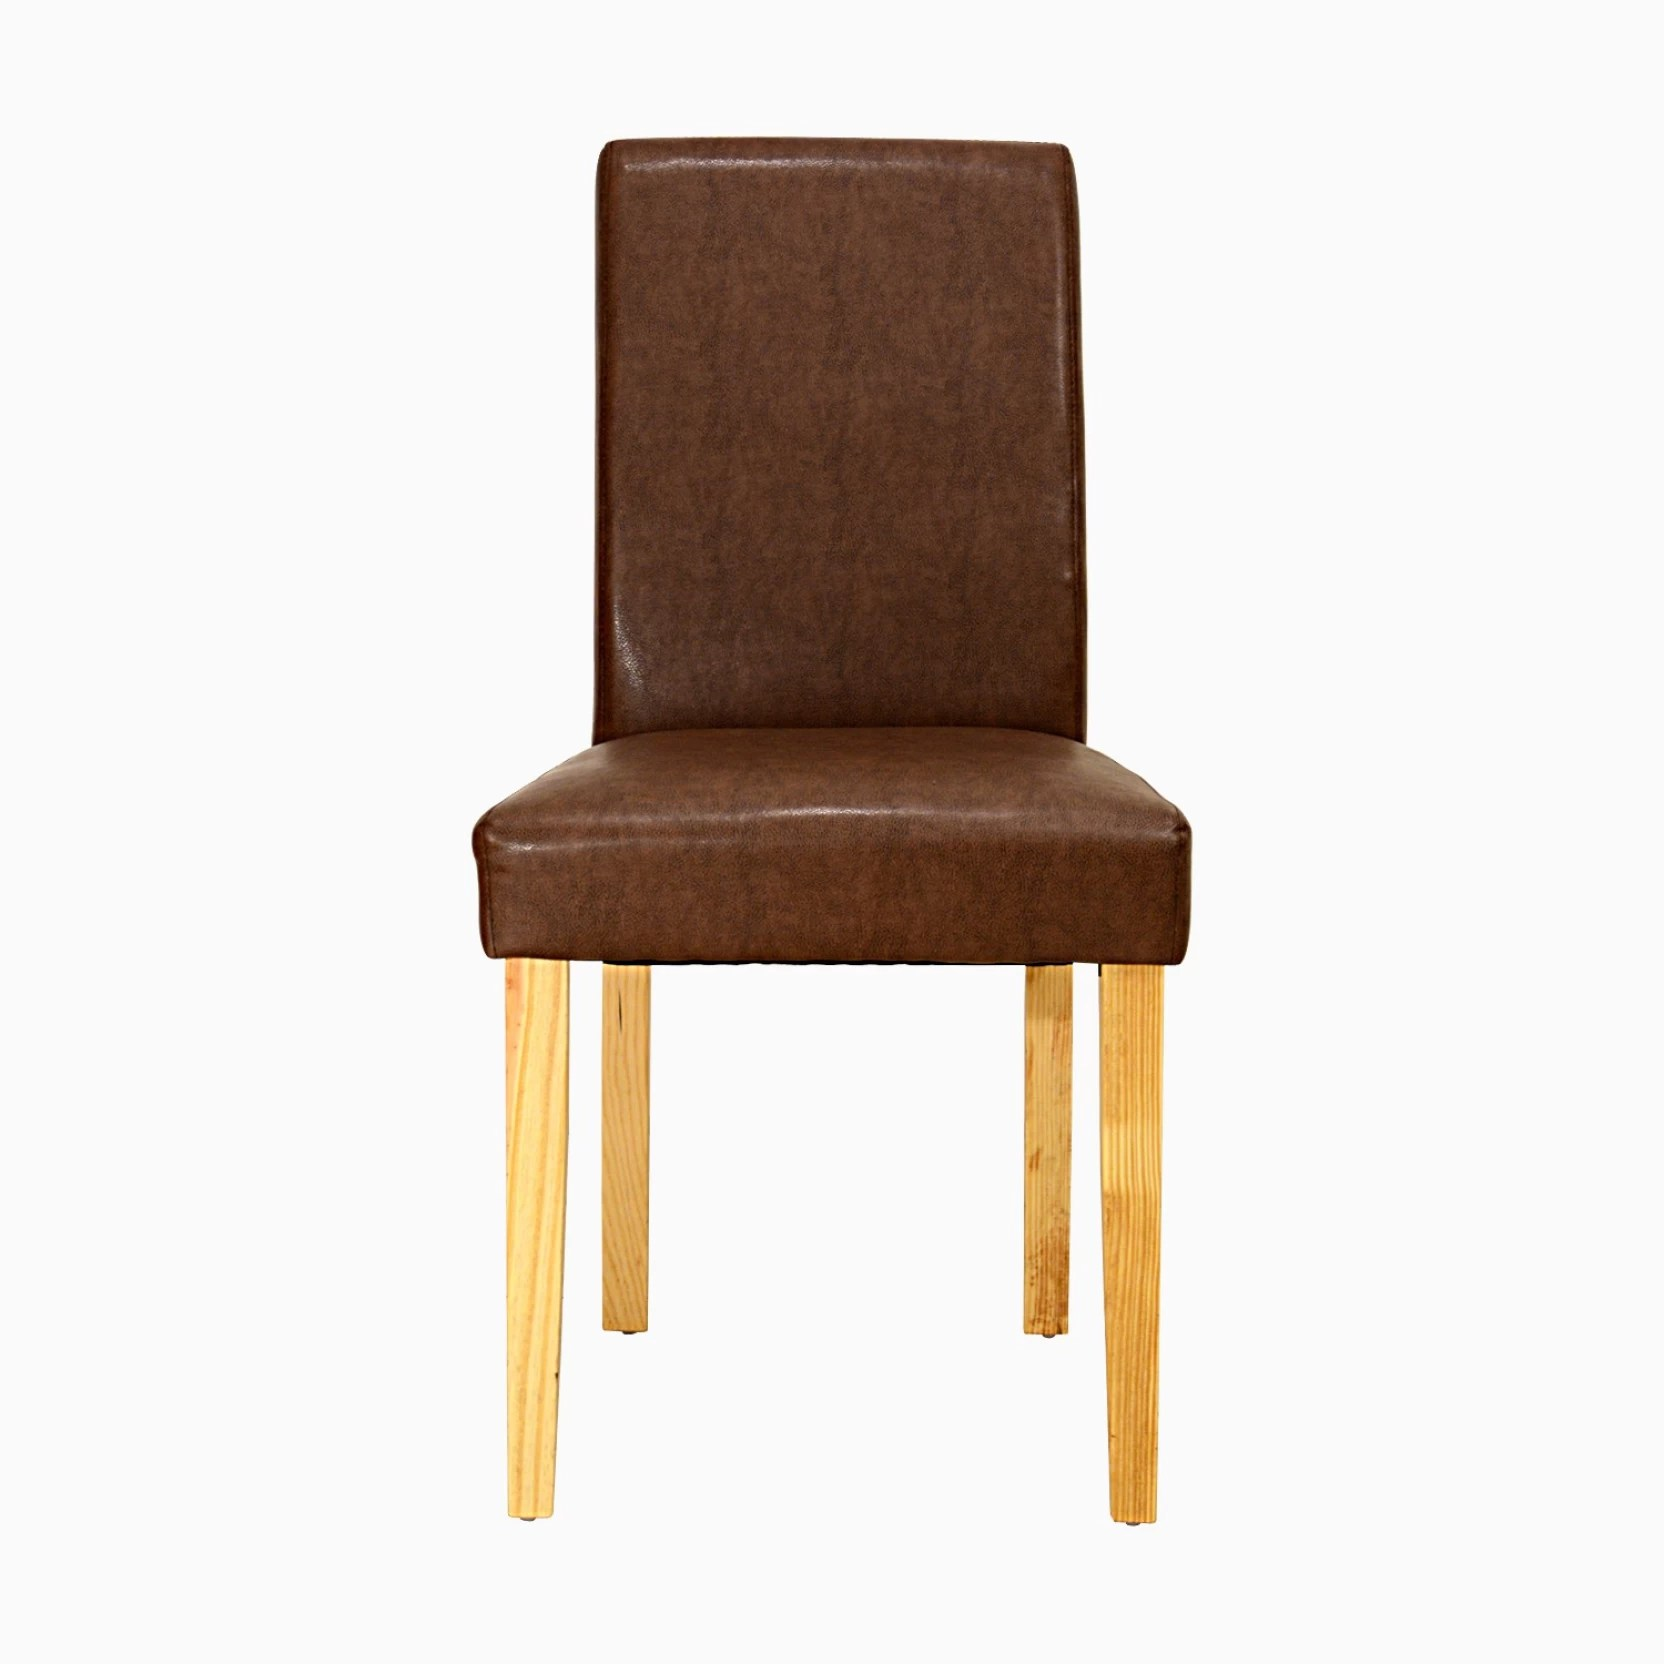 Bettsofa Interio Ch Godrej Interio Sparta Dining Chair Solid Wood Dining Chair Price In